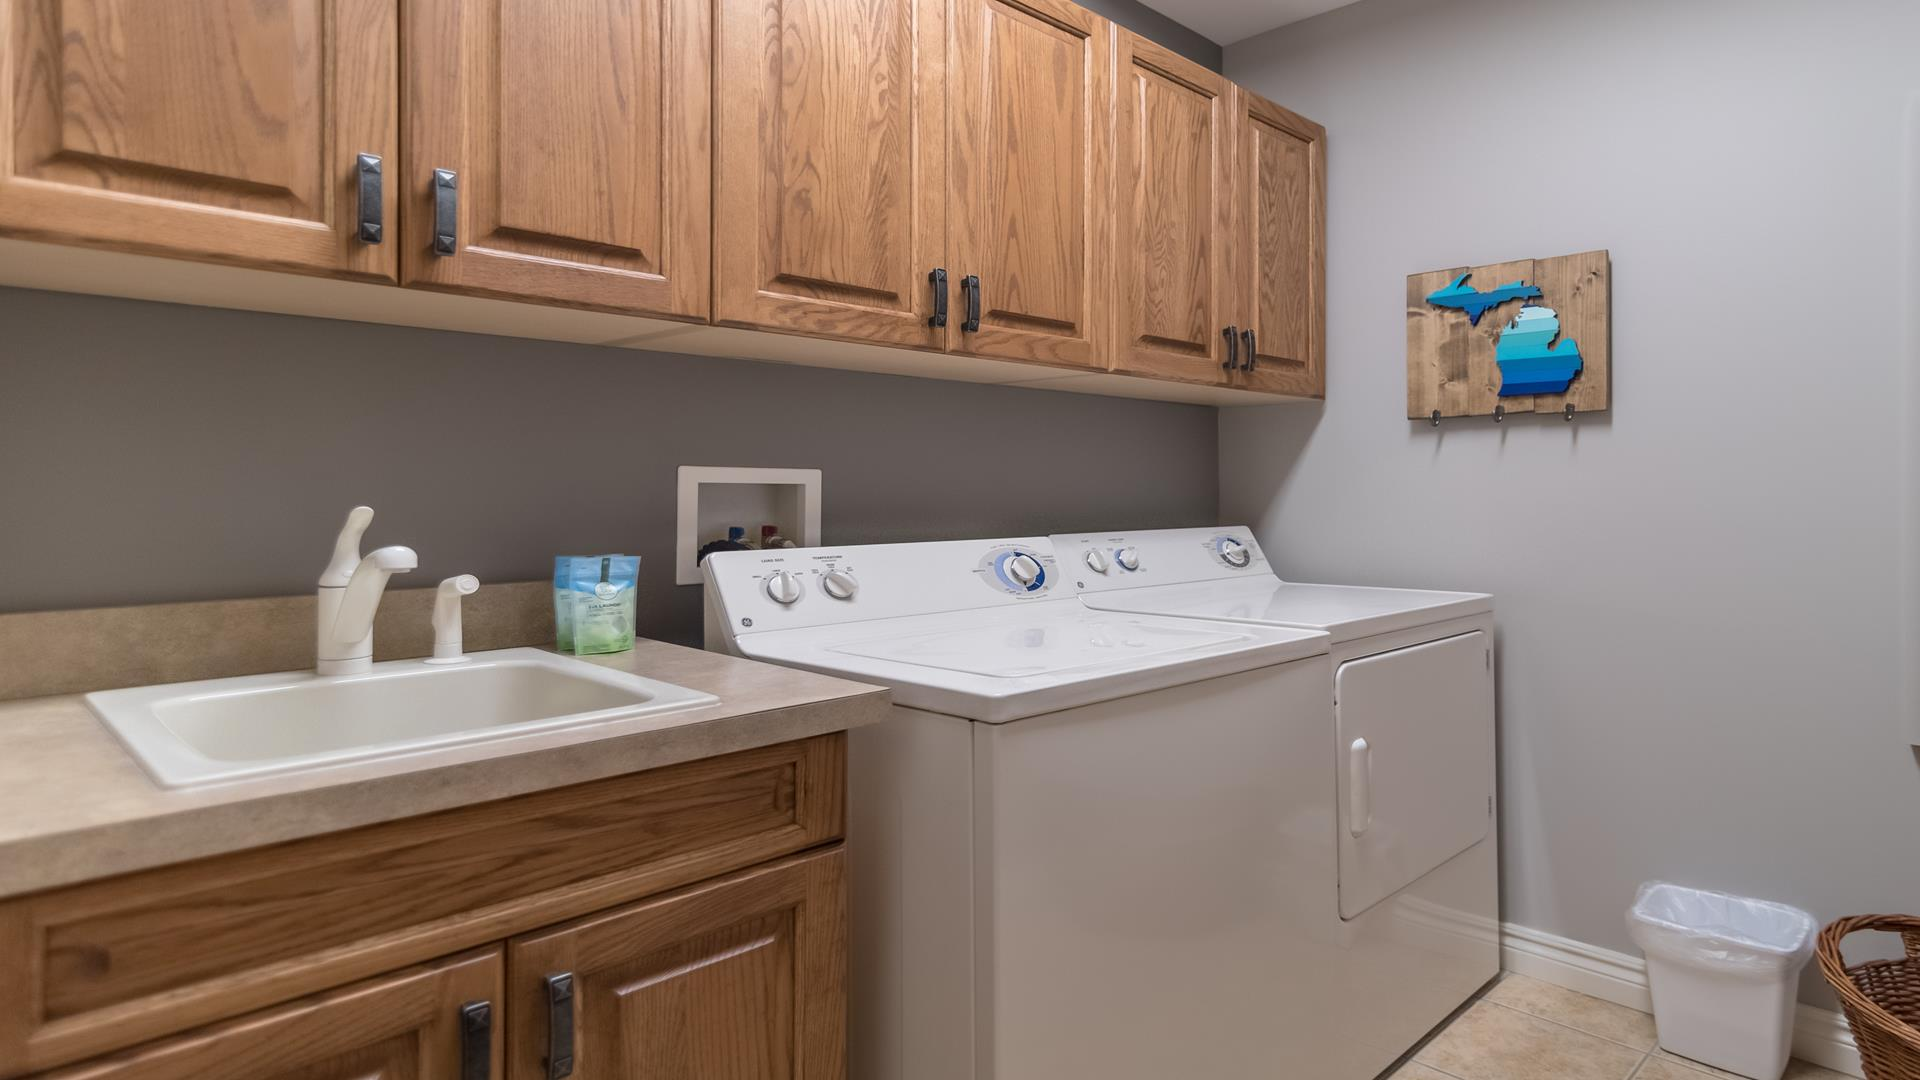 Sub Zero appliances, Viking range, granite kitchen countertops